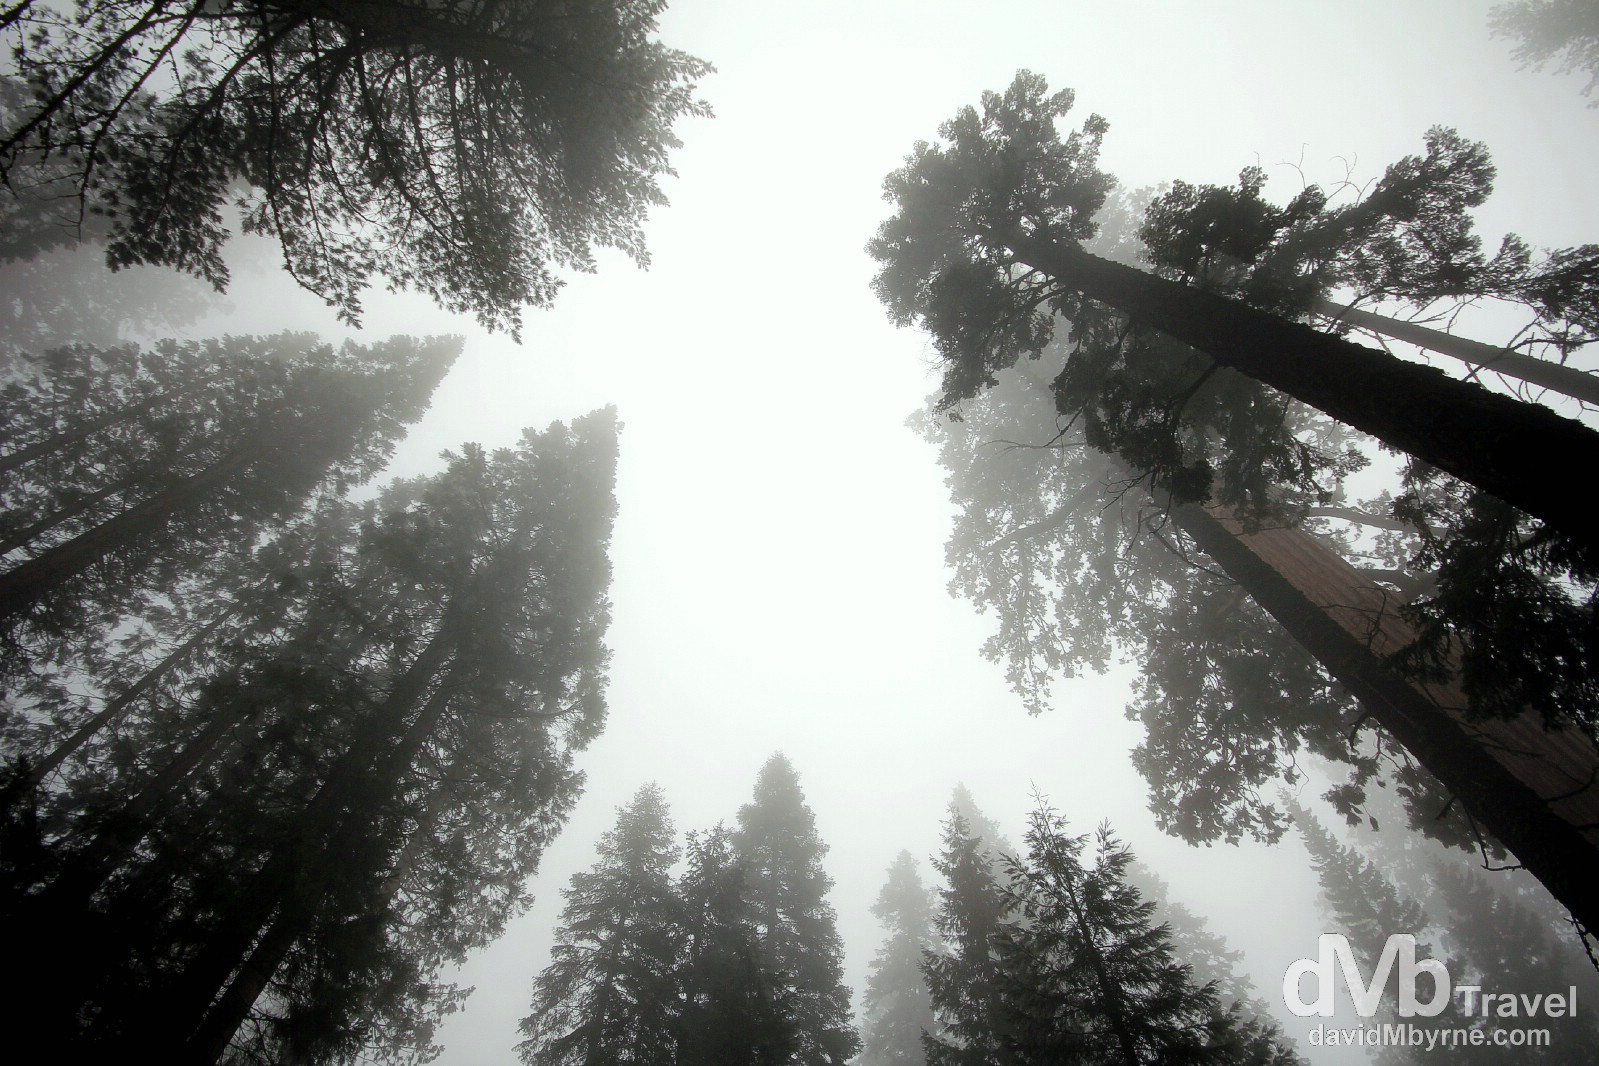 Mist & trees in Sequoia National Park, California, USA. April 2nd 2013.